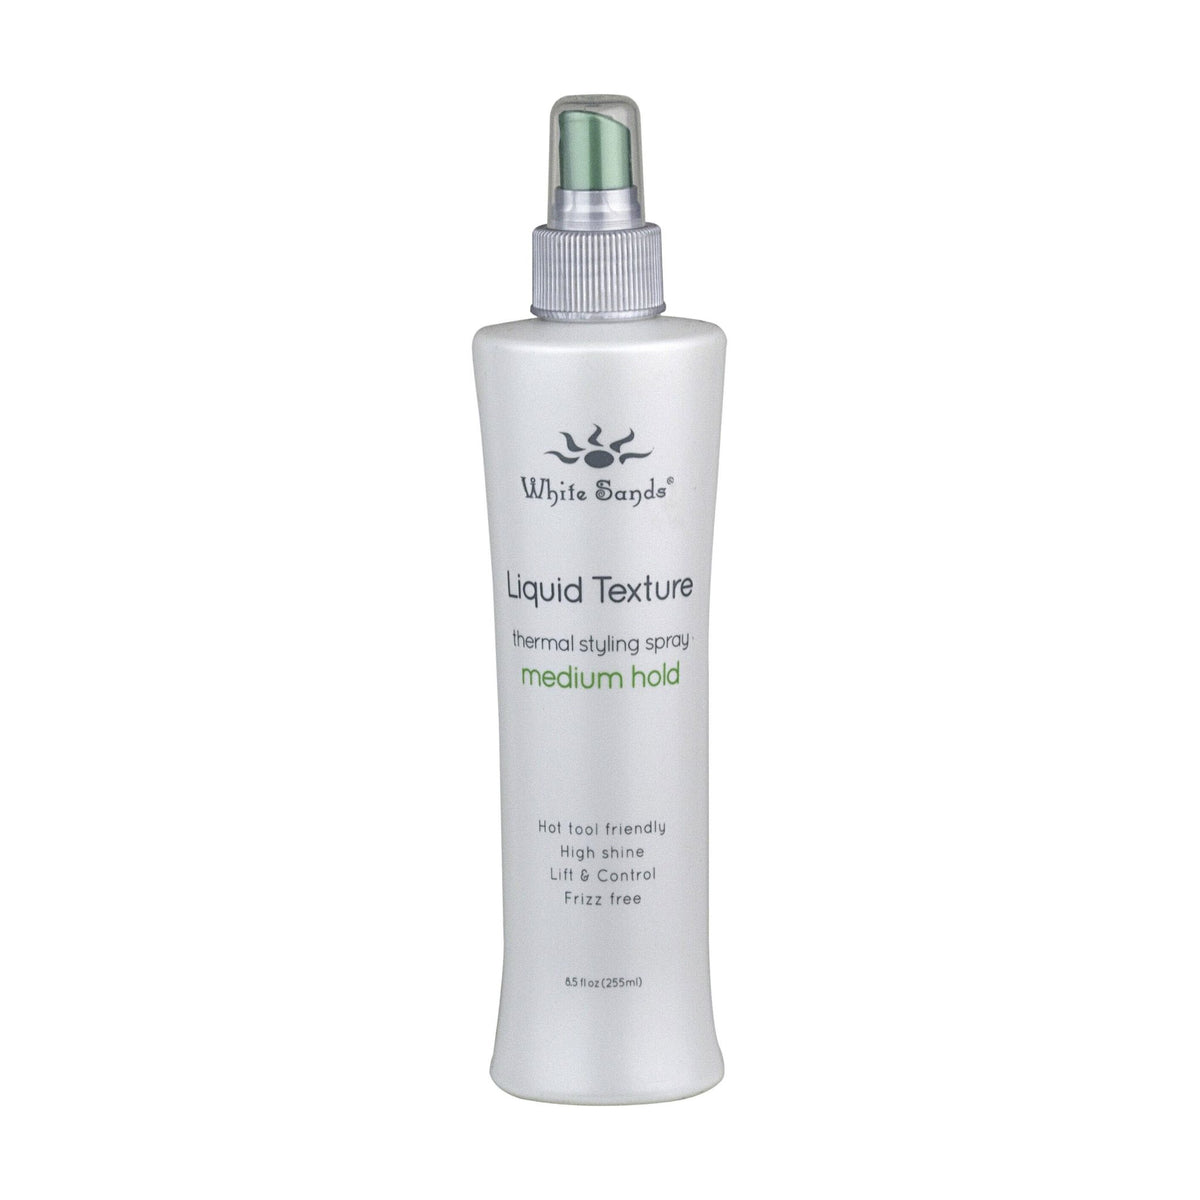 White Sands - Liquid Texture Medium Hold Hairspray 255ml